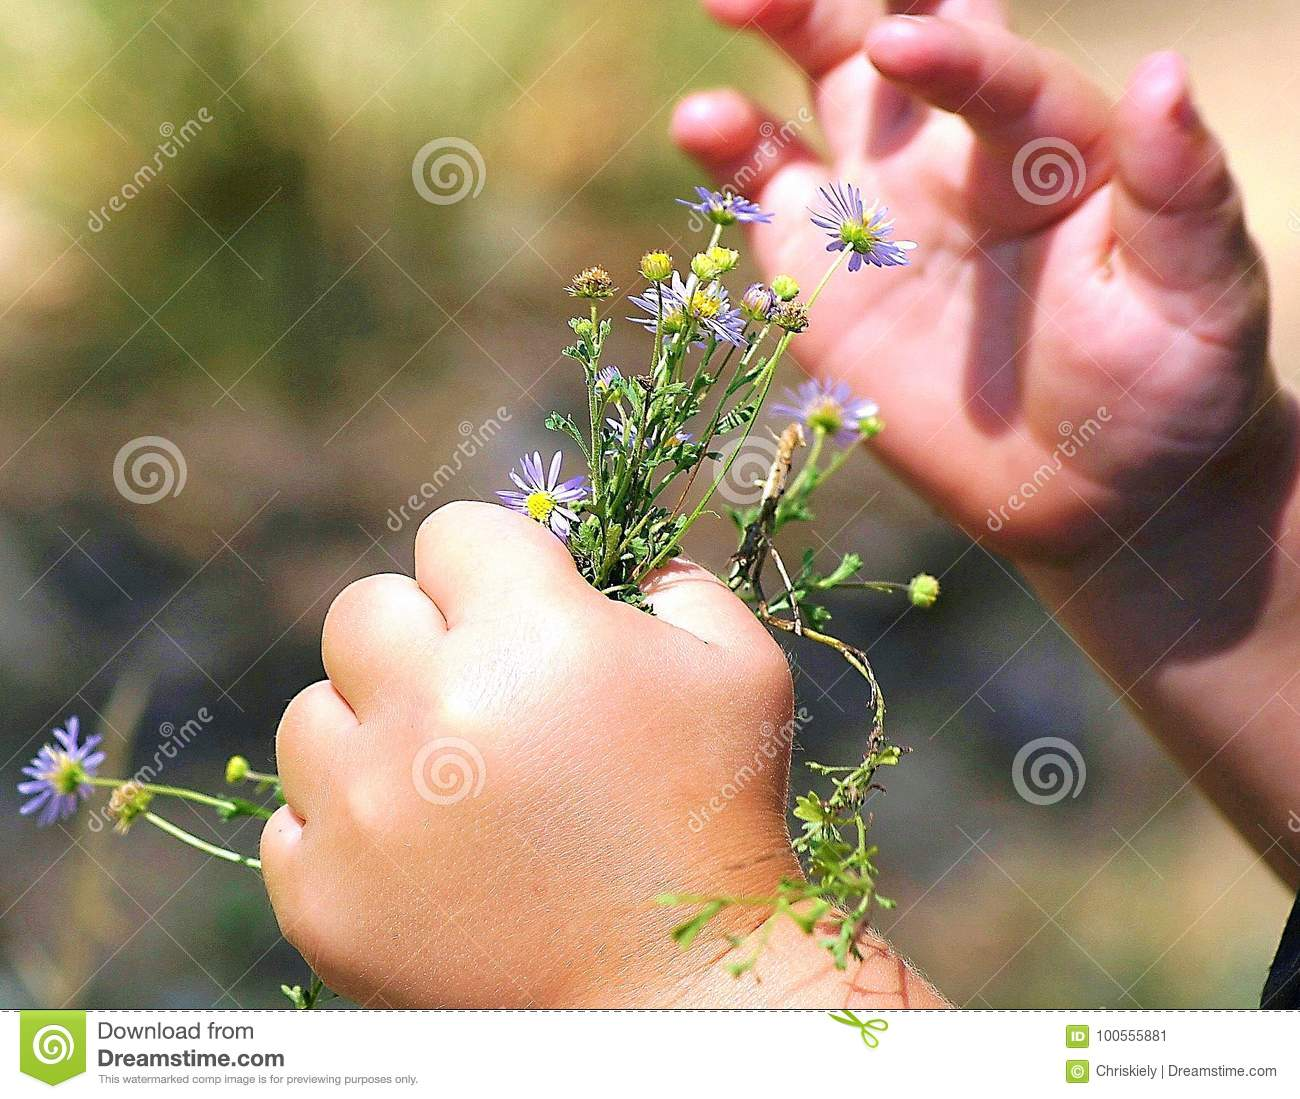 A Child`s Hand